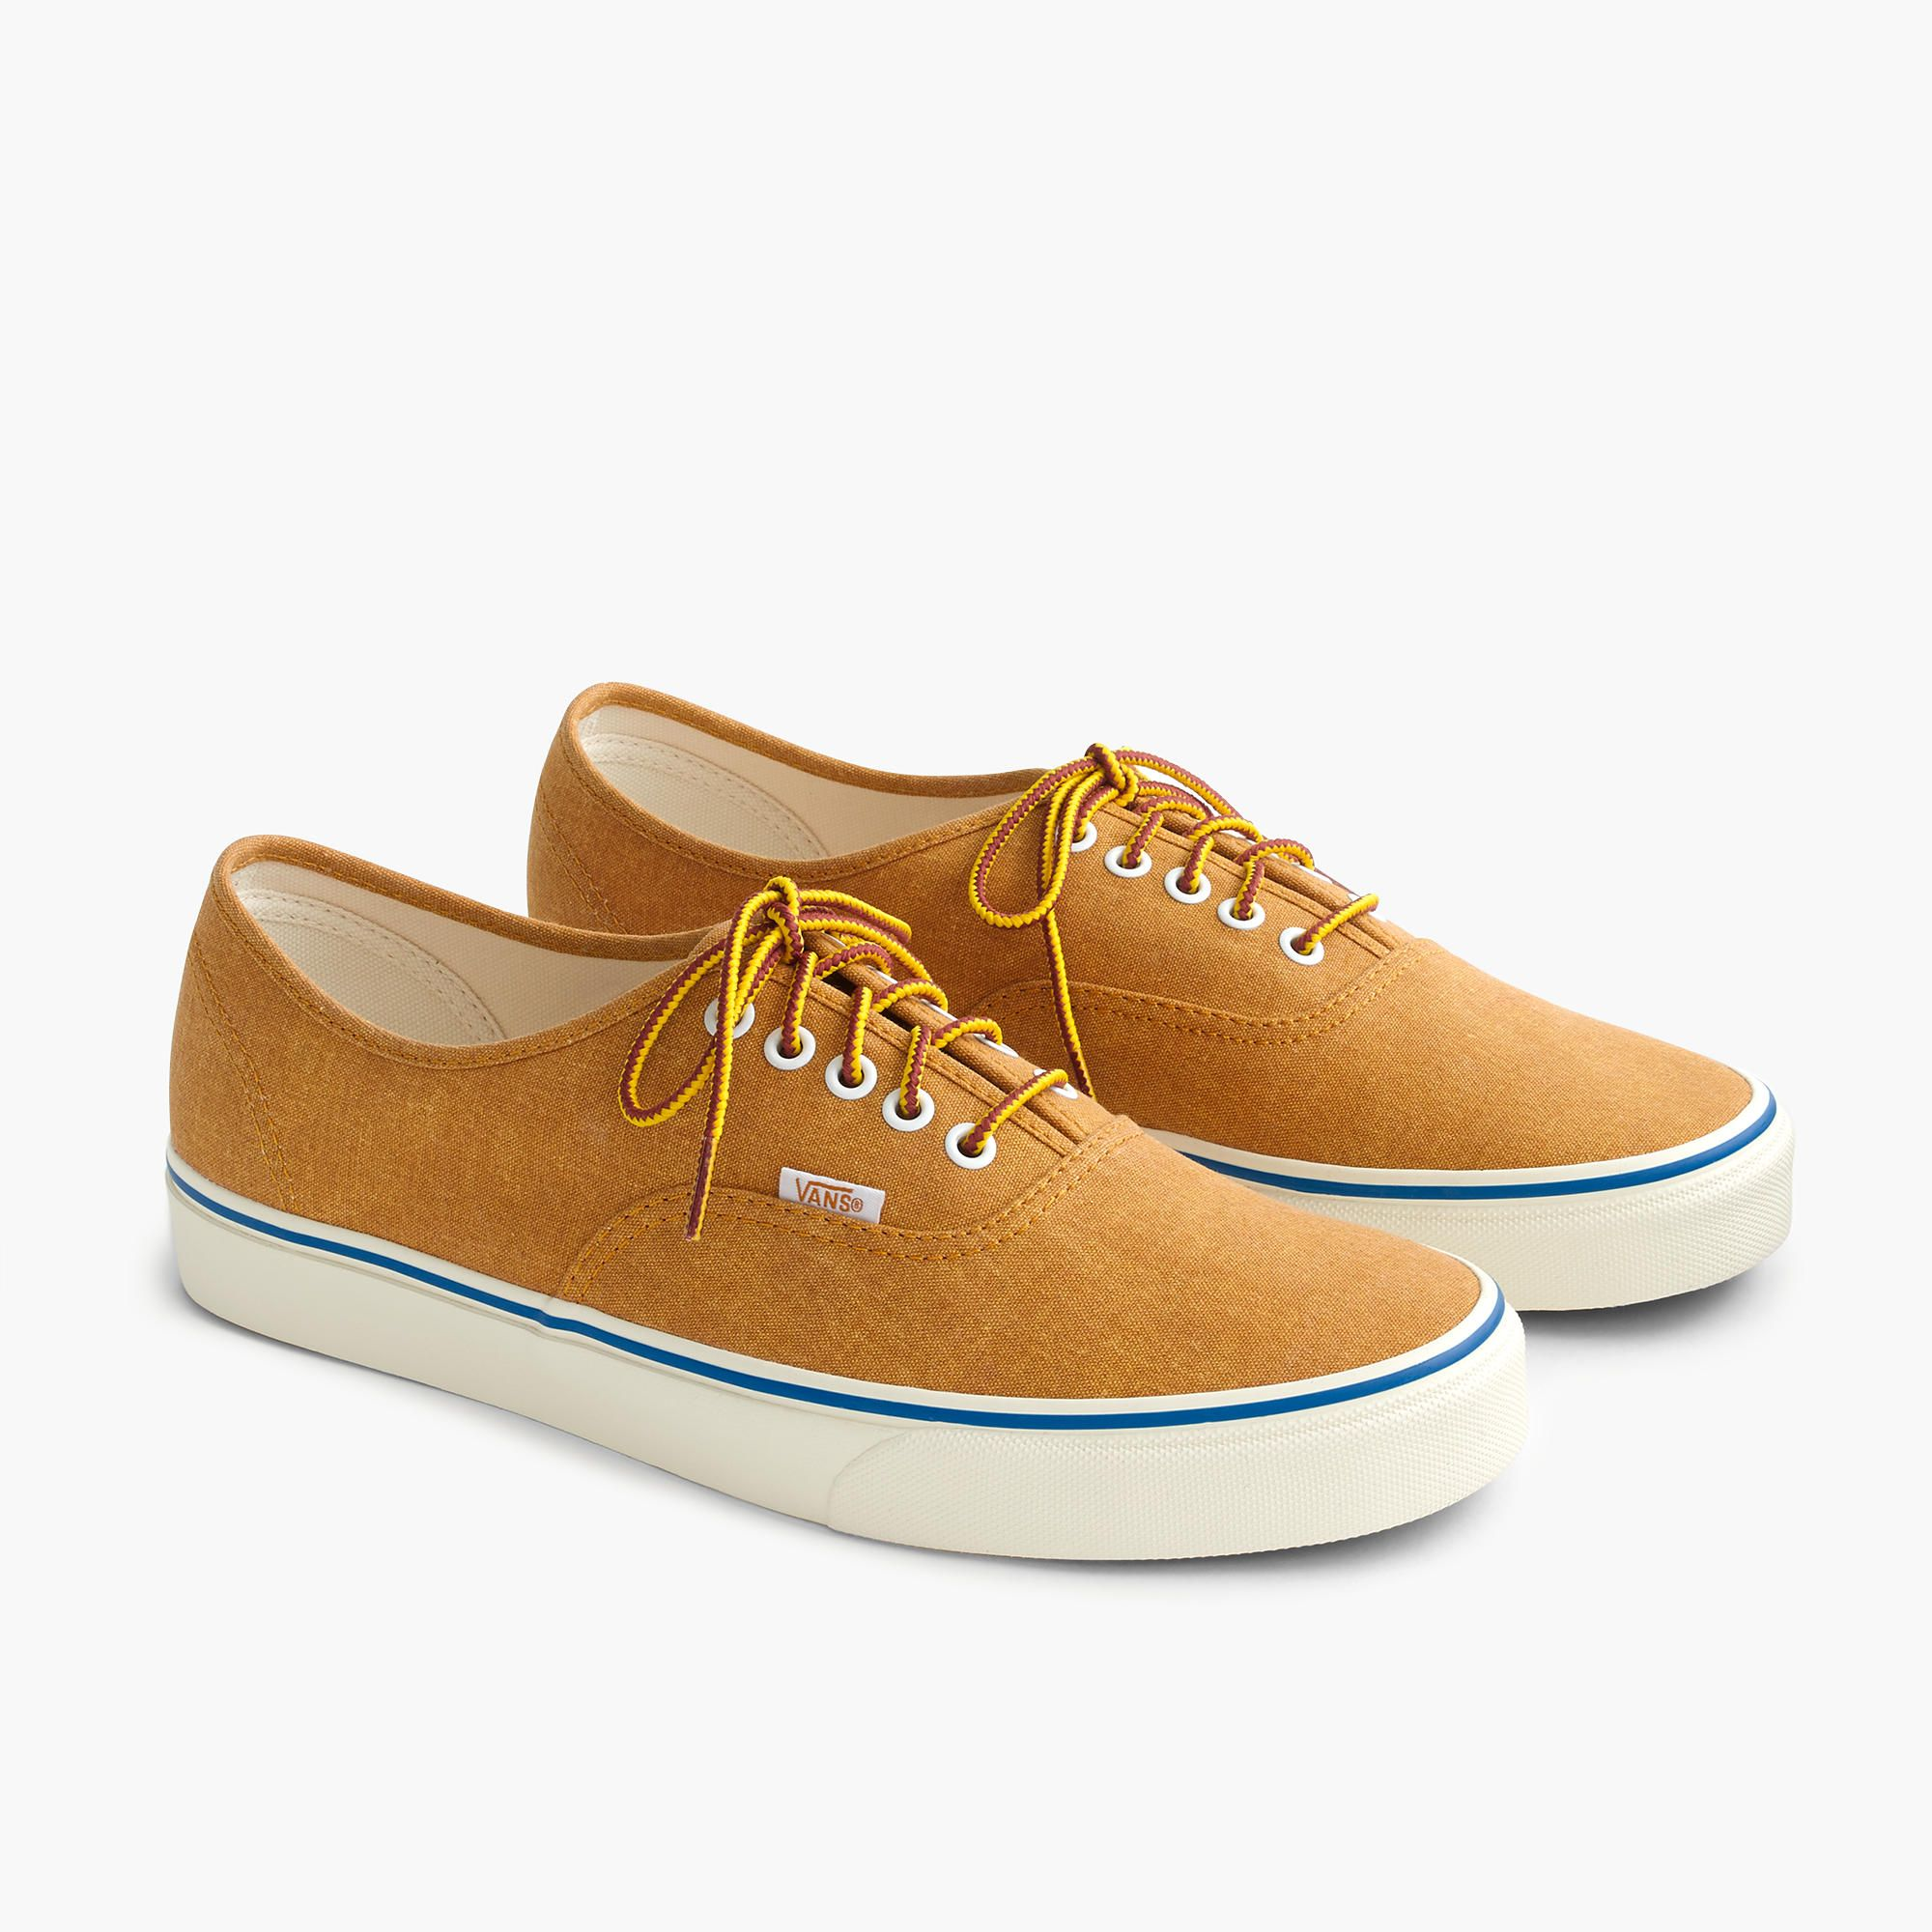 a2ad4b2e0062 Vans® for J.Crew washed canvas authentic sneakers